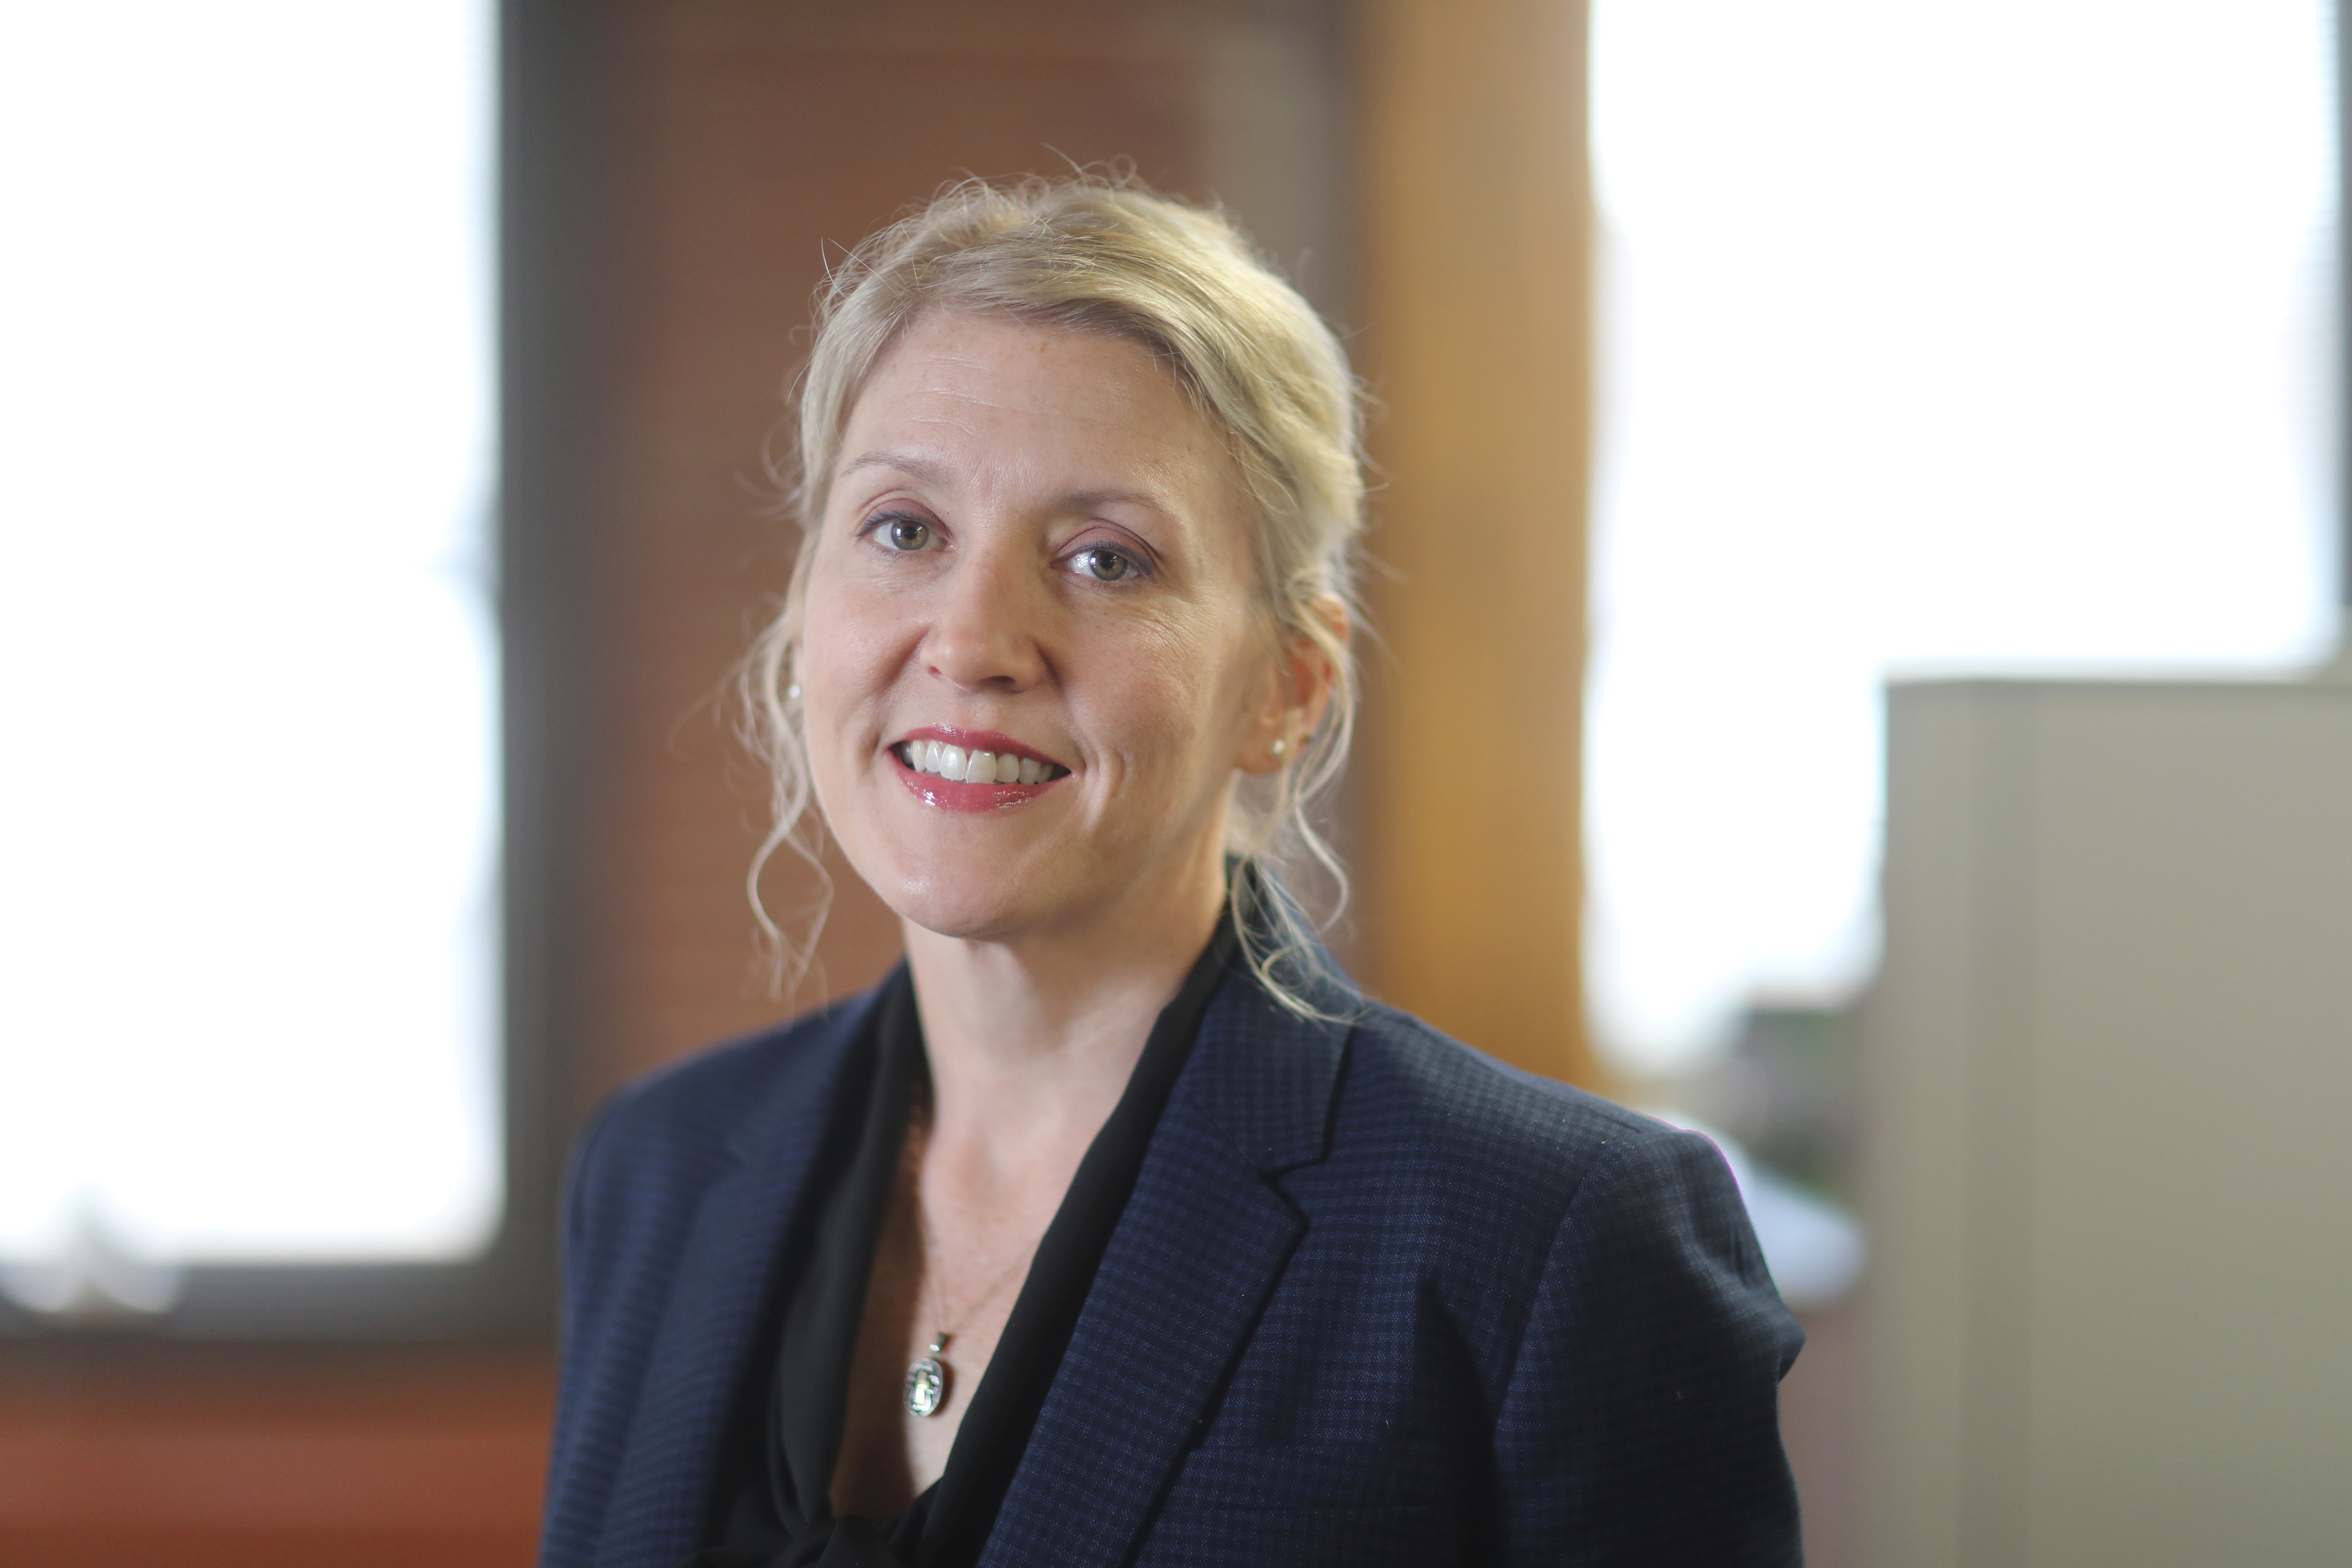 The daughter of a small business owner, Julie Ann Jones has an especially strong passion for local businesses. As Drexel´s new assistant vp of procurement, she has many hopes for the new procurement collaborative being announced Wednesday by the Economy League of Greater Philadelphia.